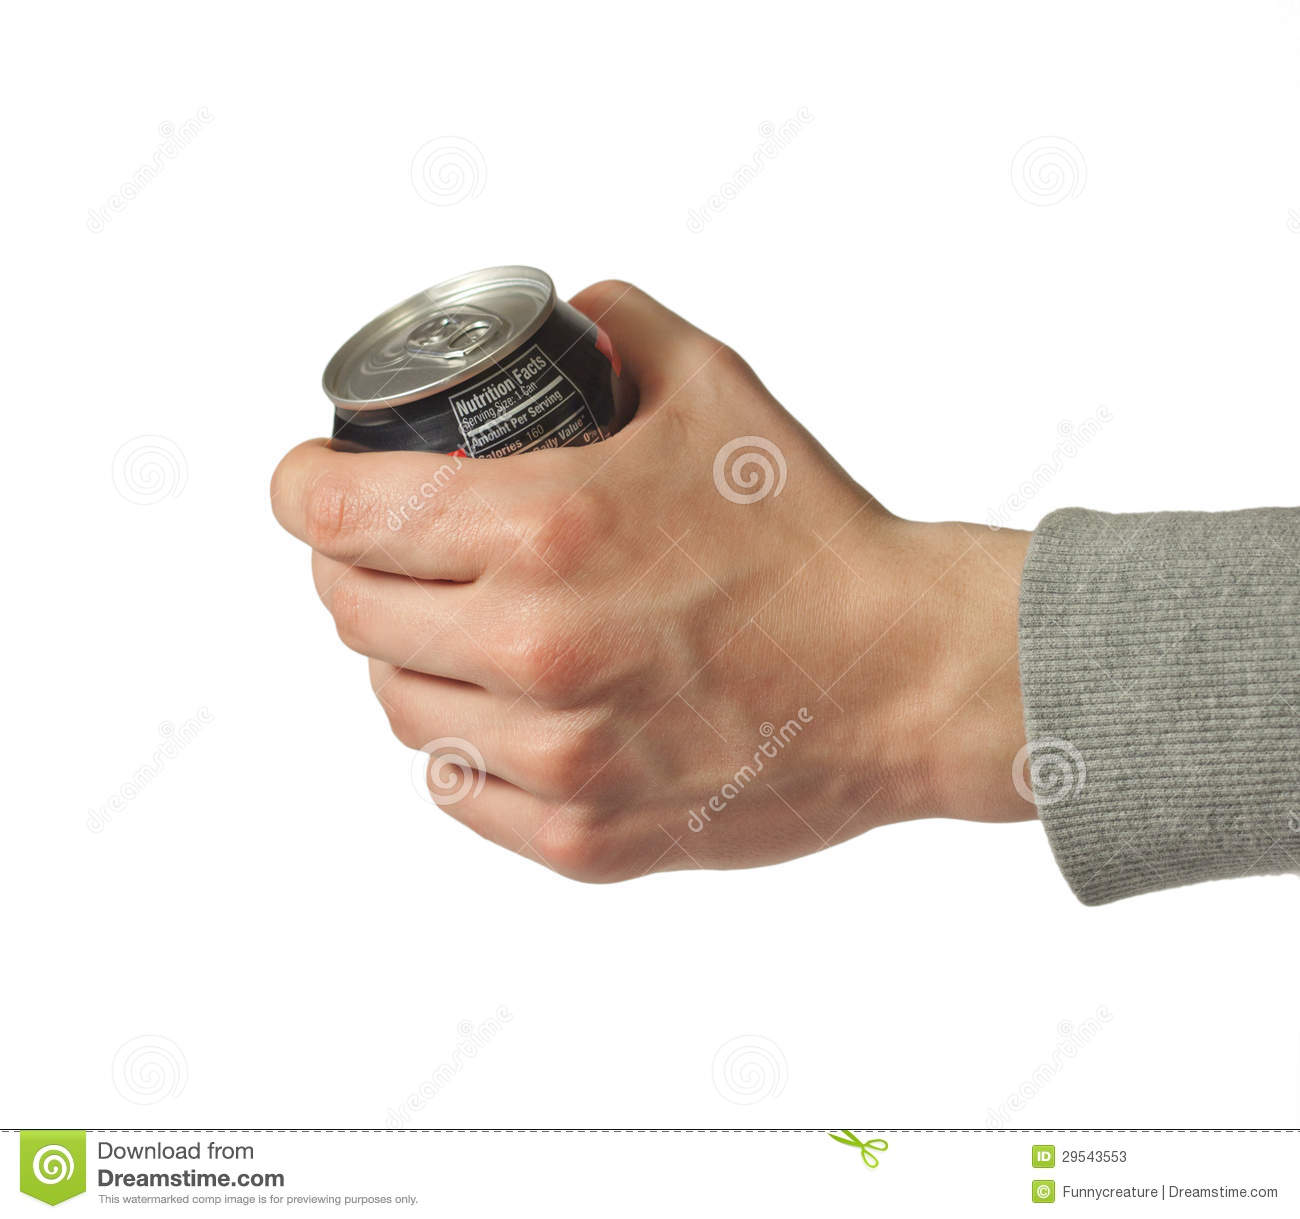 Hand Holding Closed Can Of Soda Stock Photos - Image: 29543553